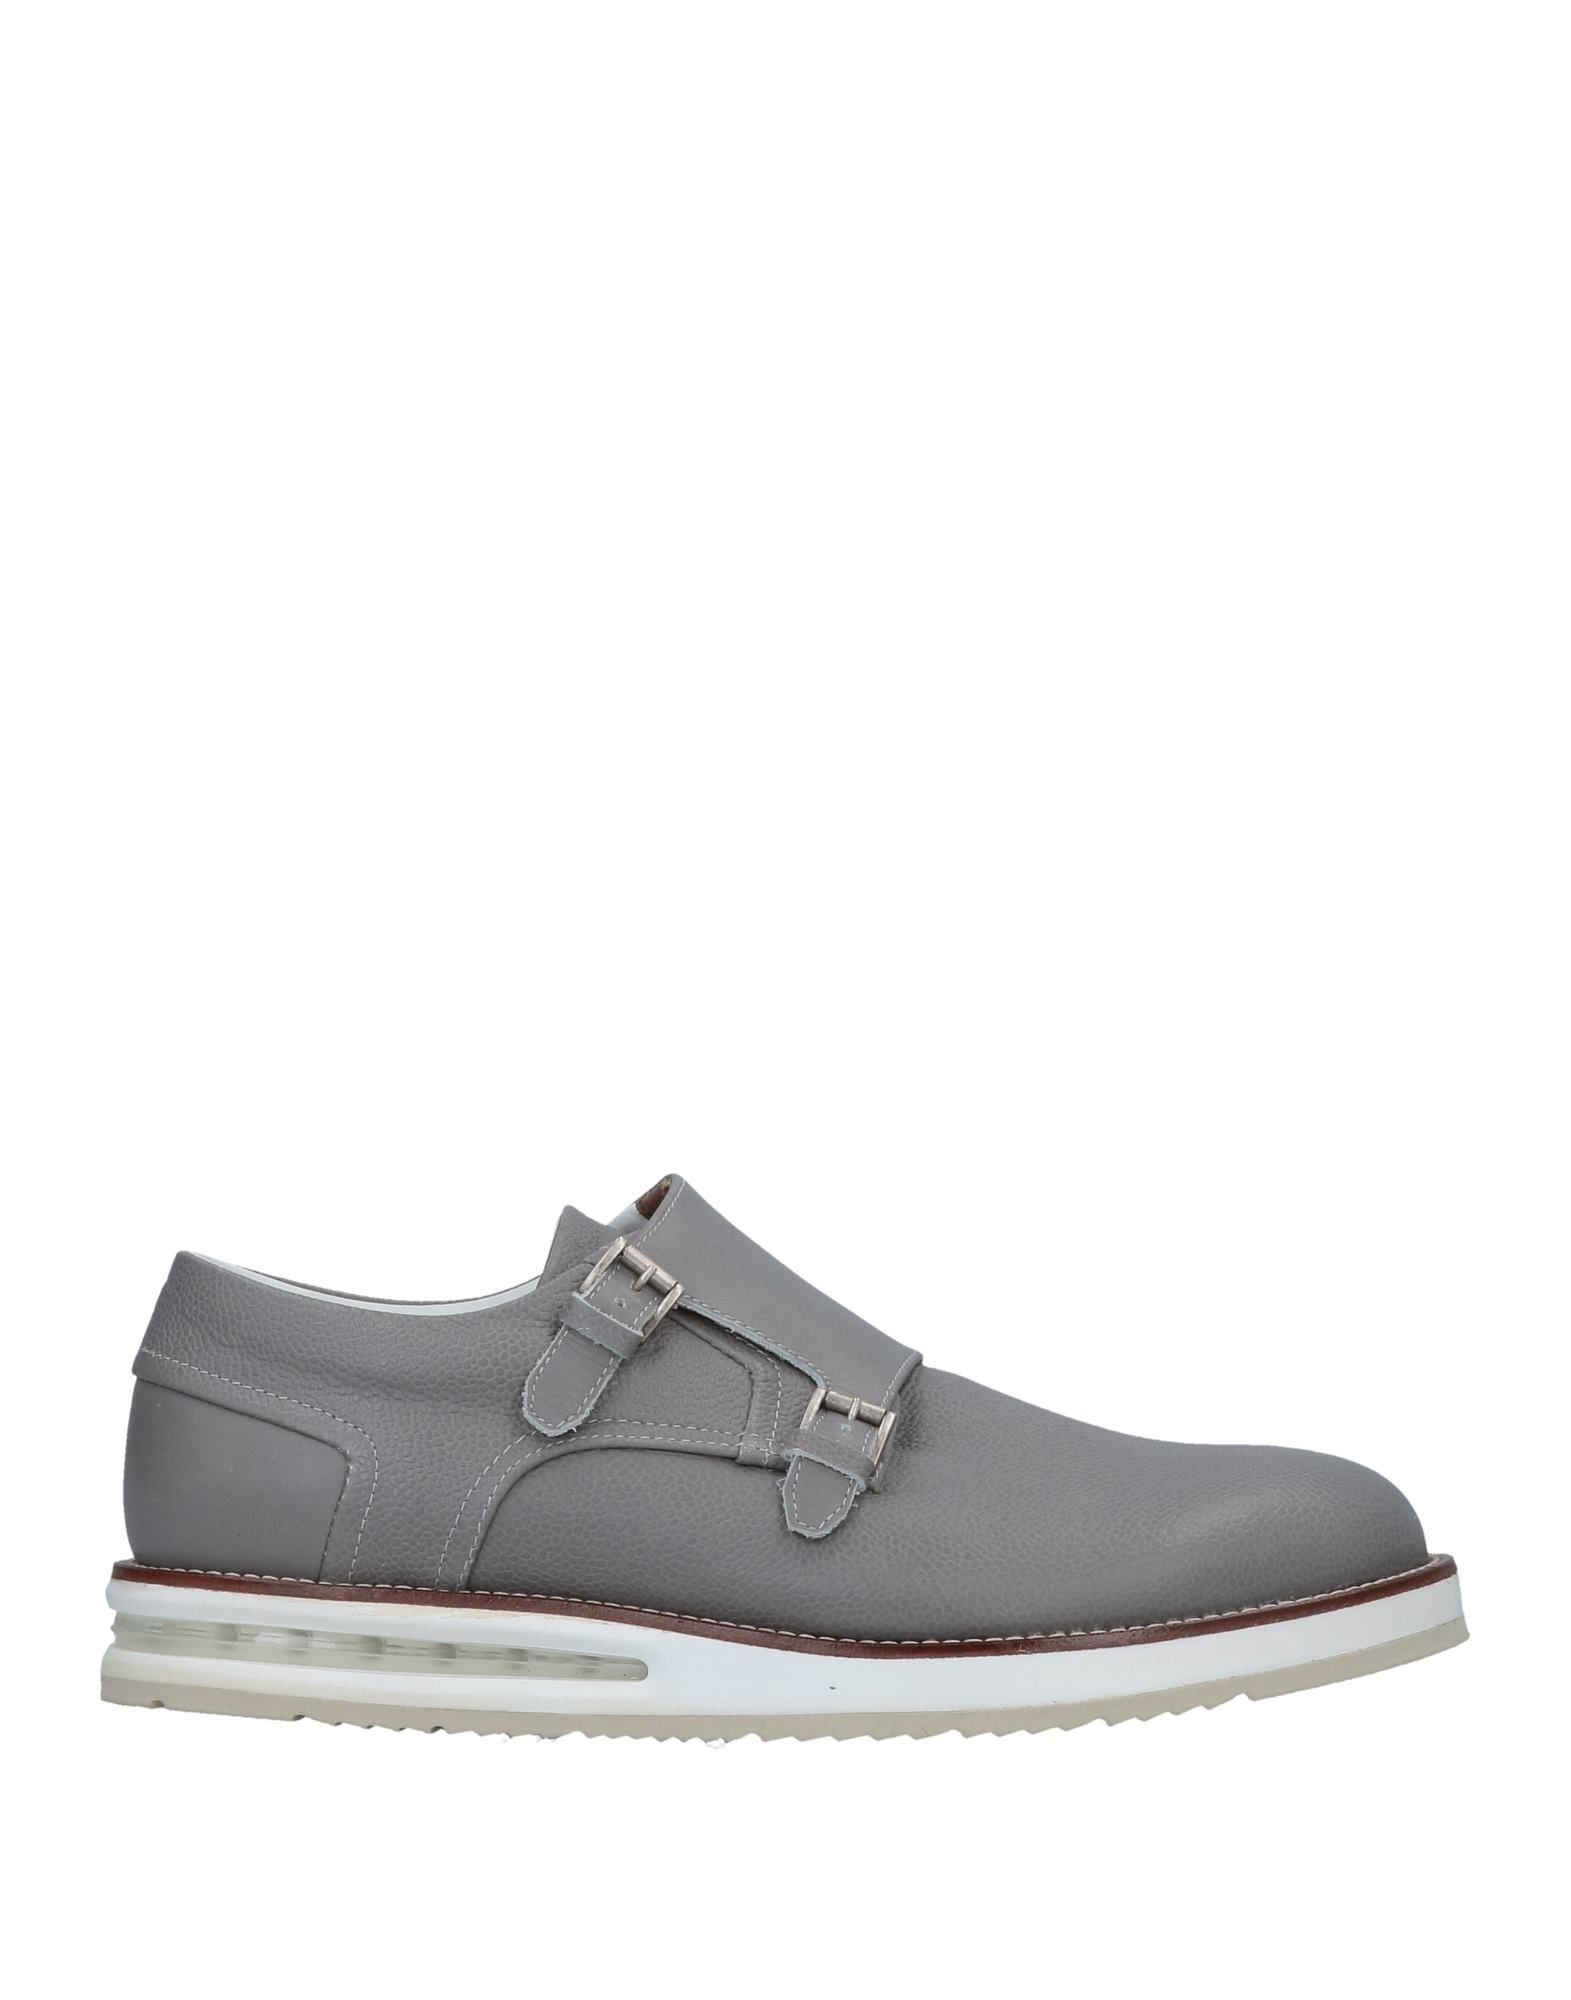 BARLEYCORN Loafers in Grey